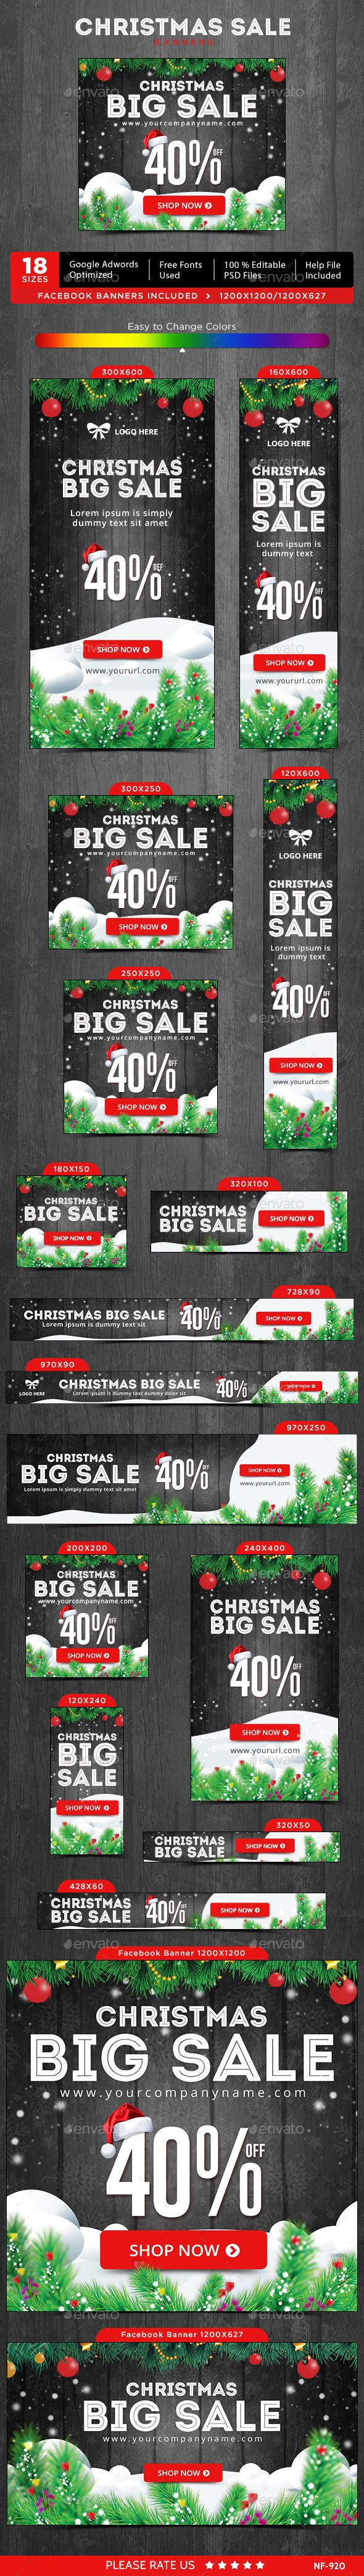 Christmas Sale Banners — Photoshop PSD #multi purpose #banner pack • Available here → https://graphicriver.net/item/christmas-sale-banners/14032936?ref=pxcr